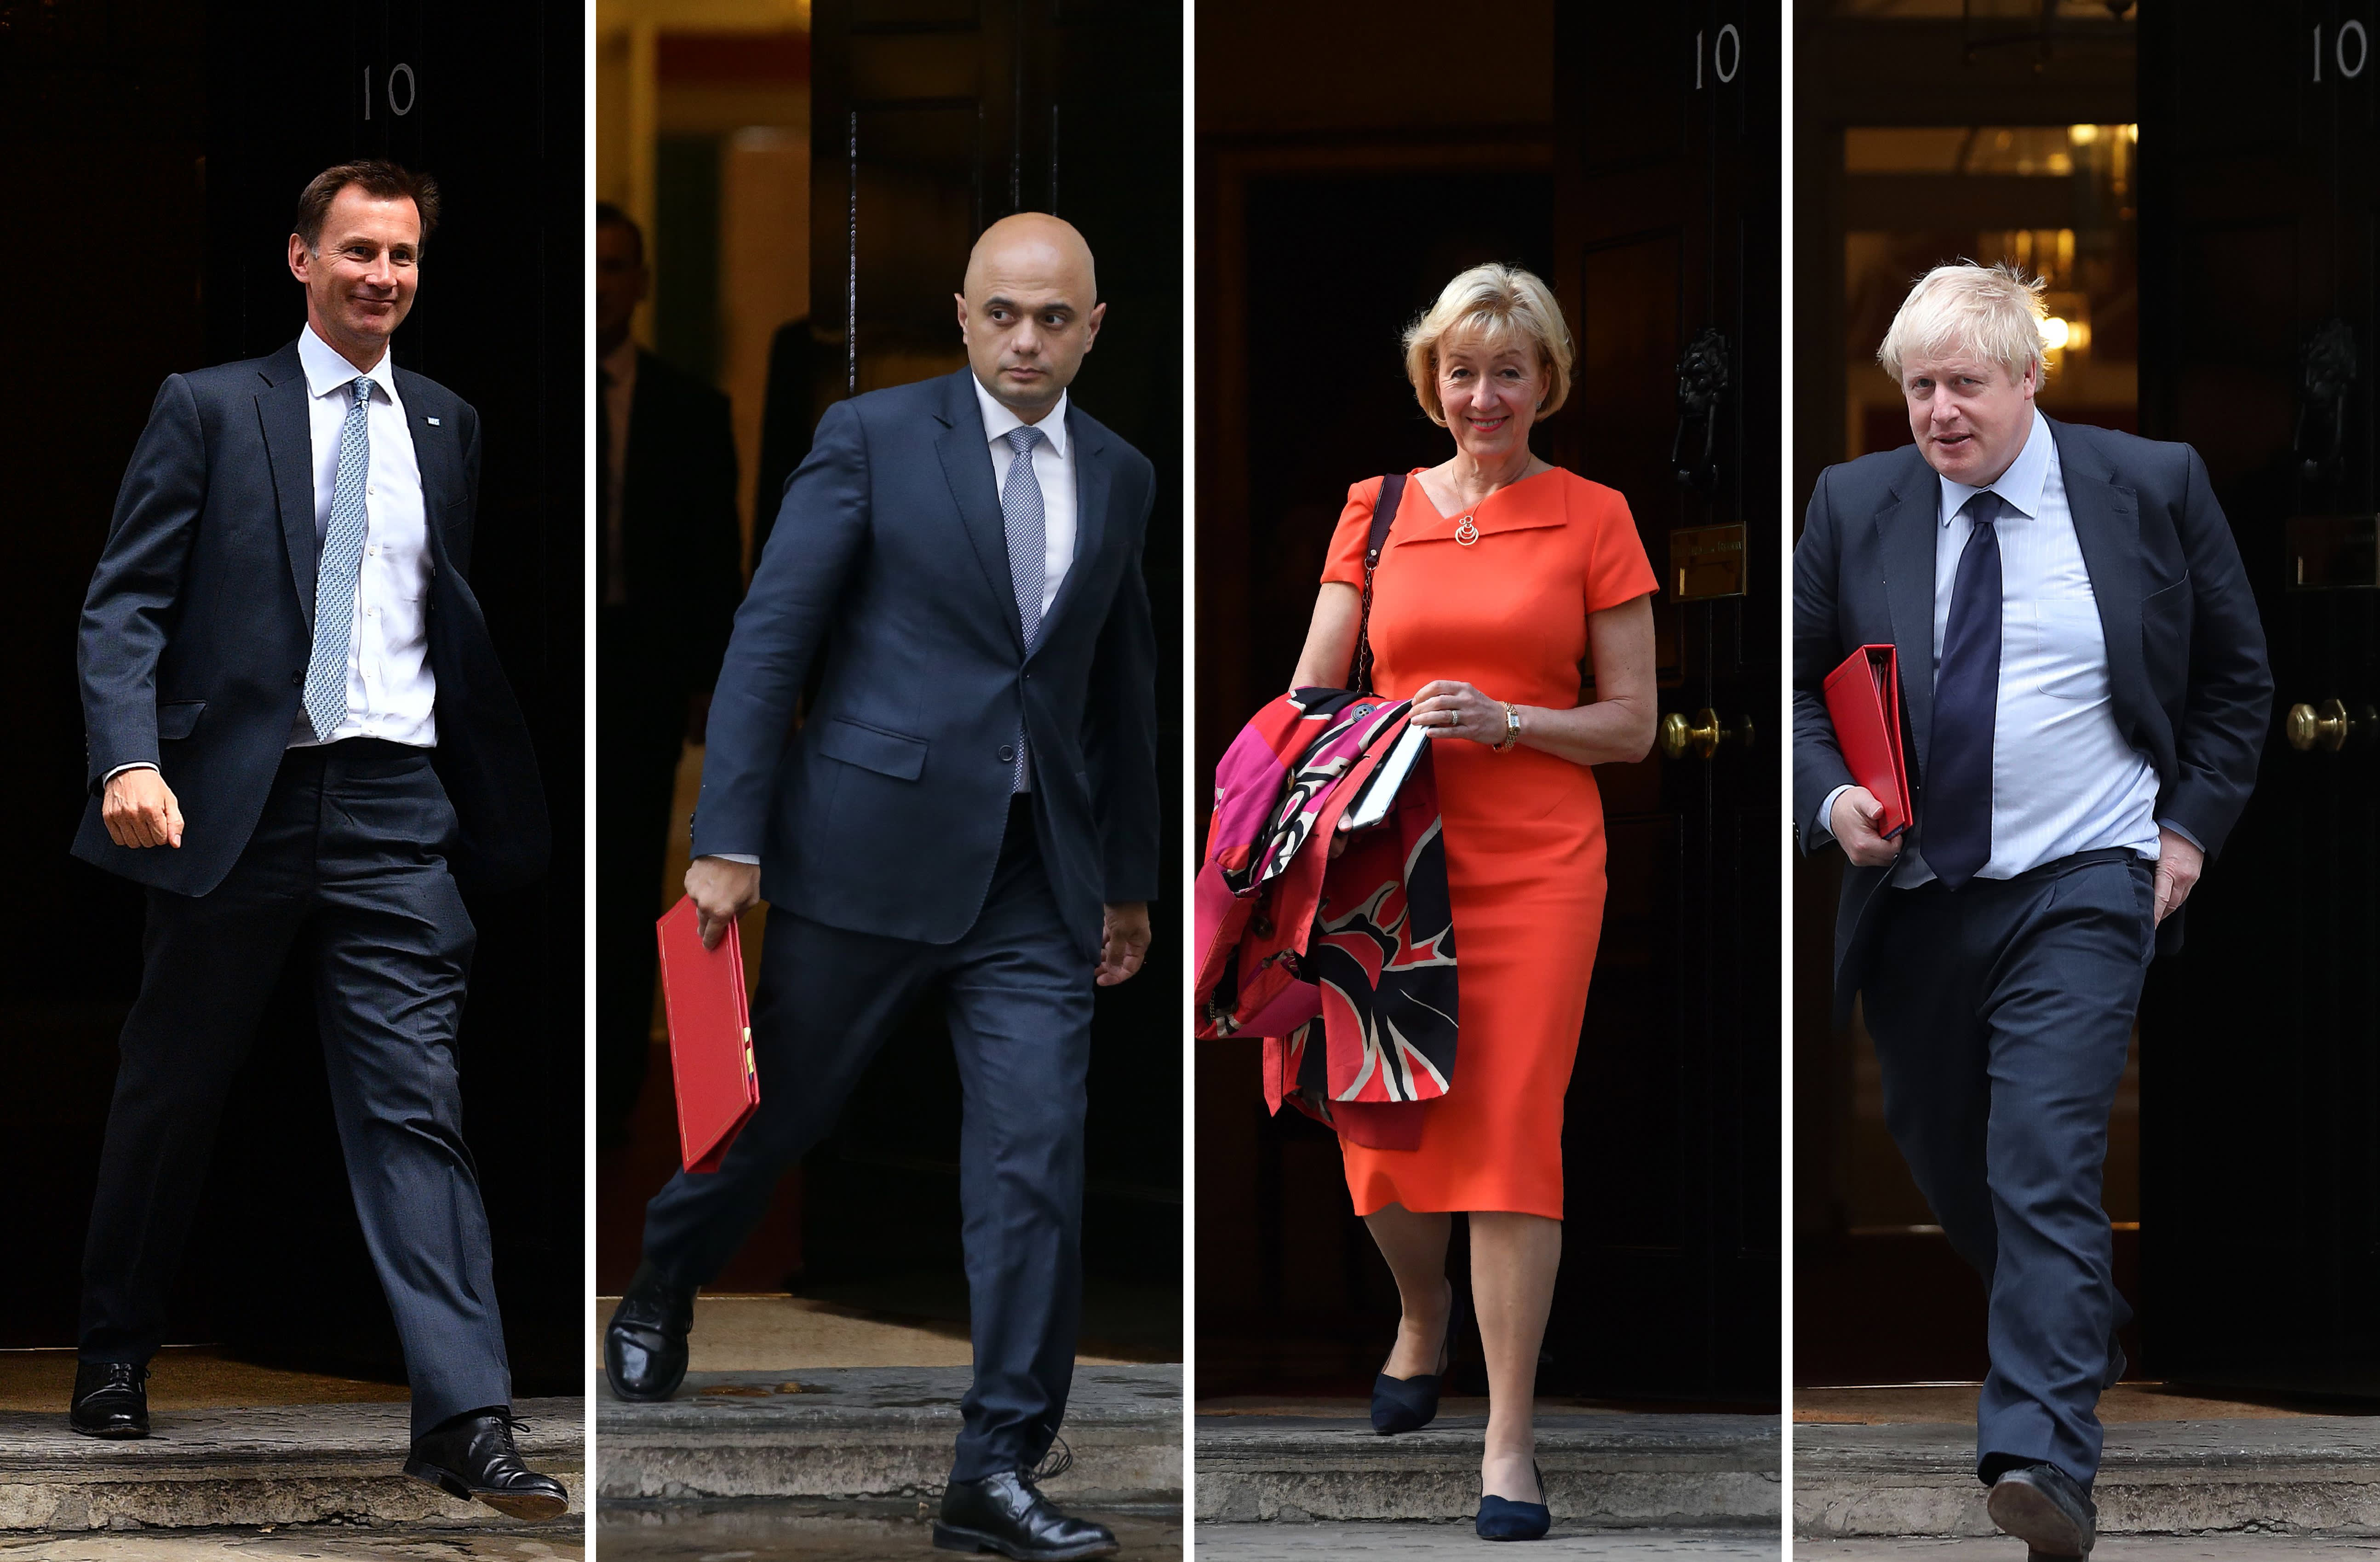 Here are the top contenders looking to become Britain's next prime minister